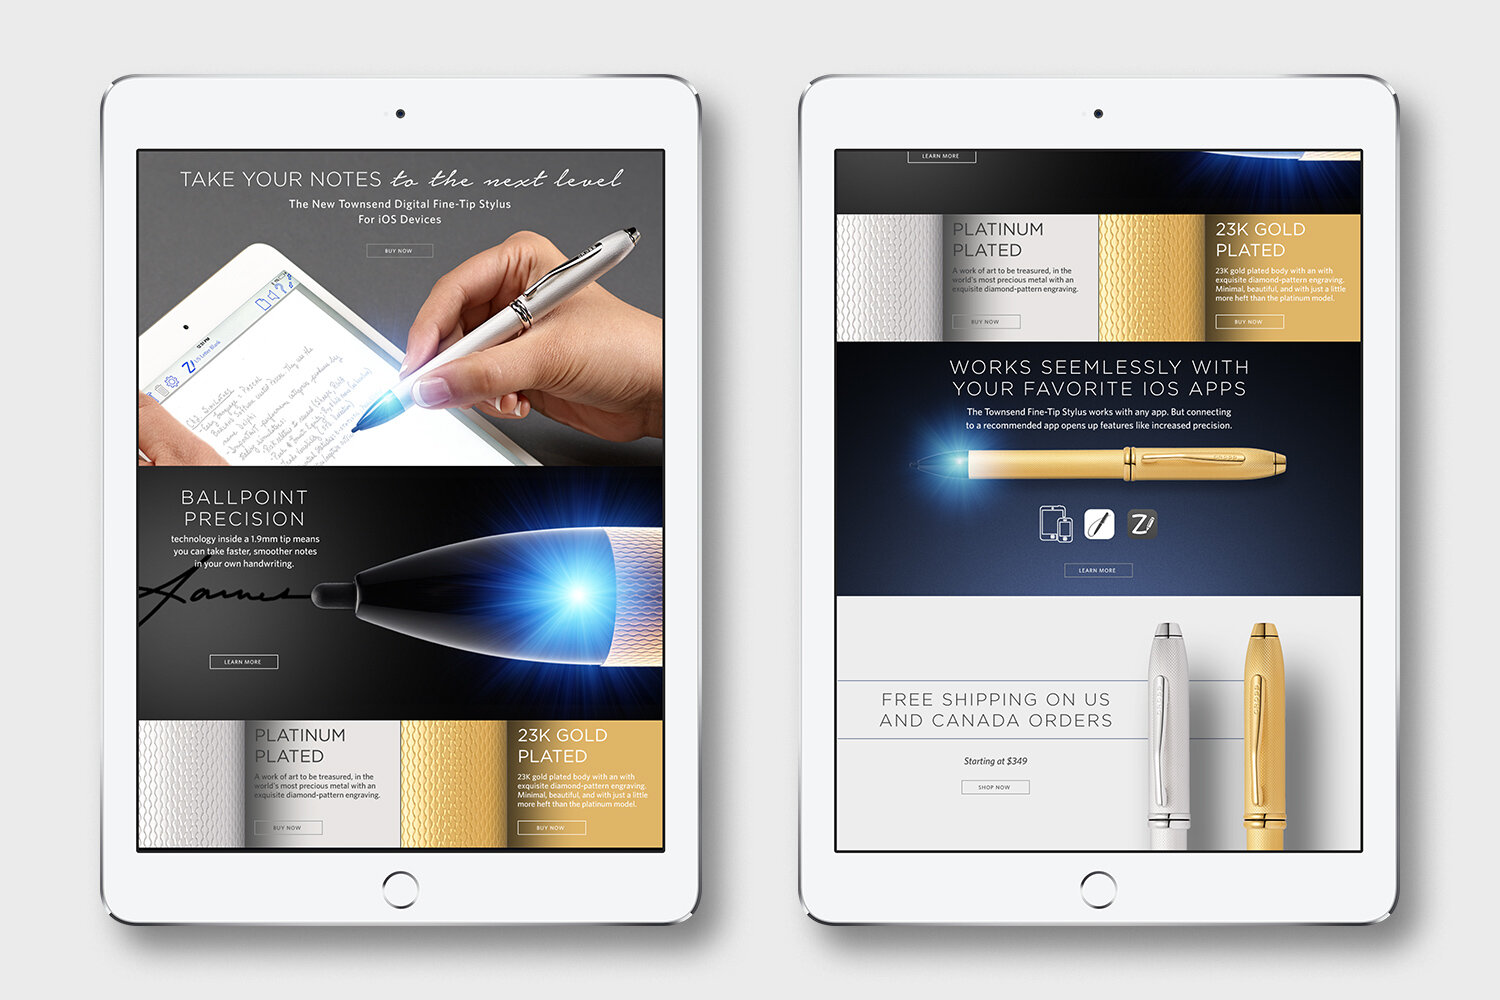 Landing page design for the Cross Townsend Stylus.